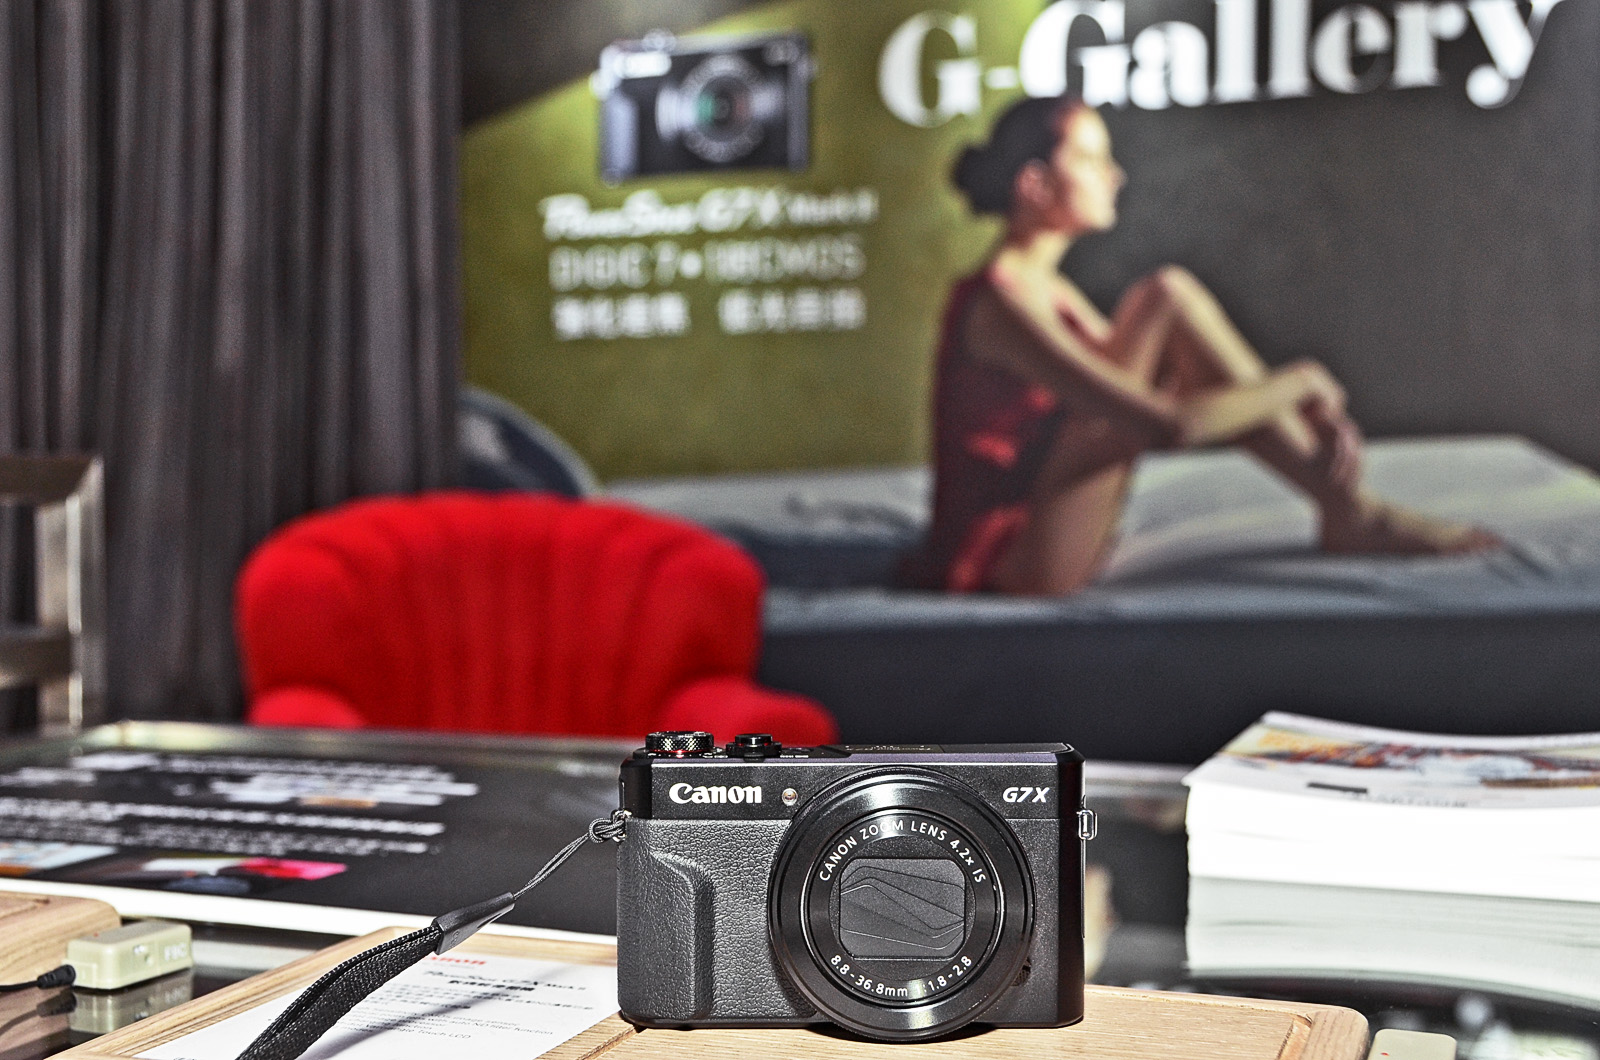 Canon PowerShot G7 X Mark III camera rumored to be announced in